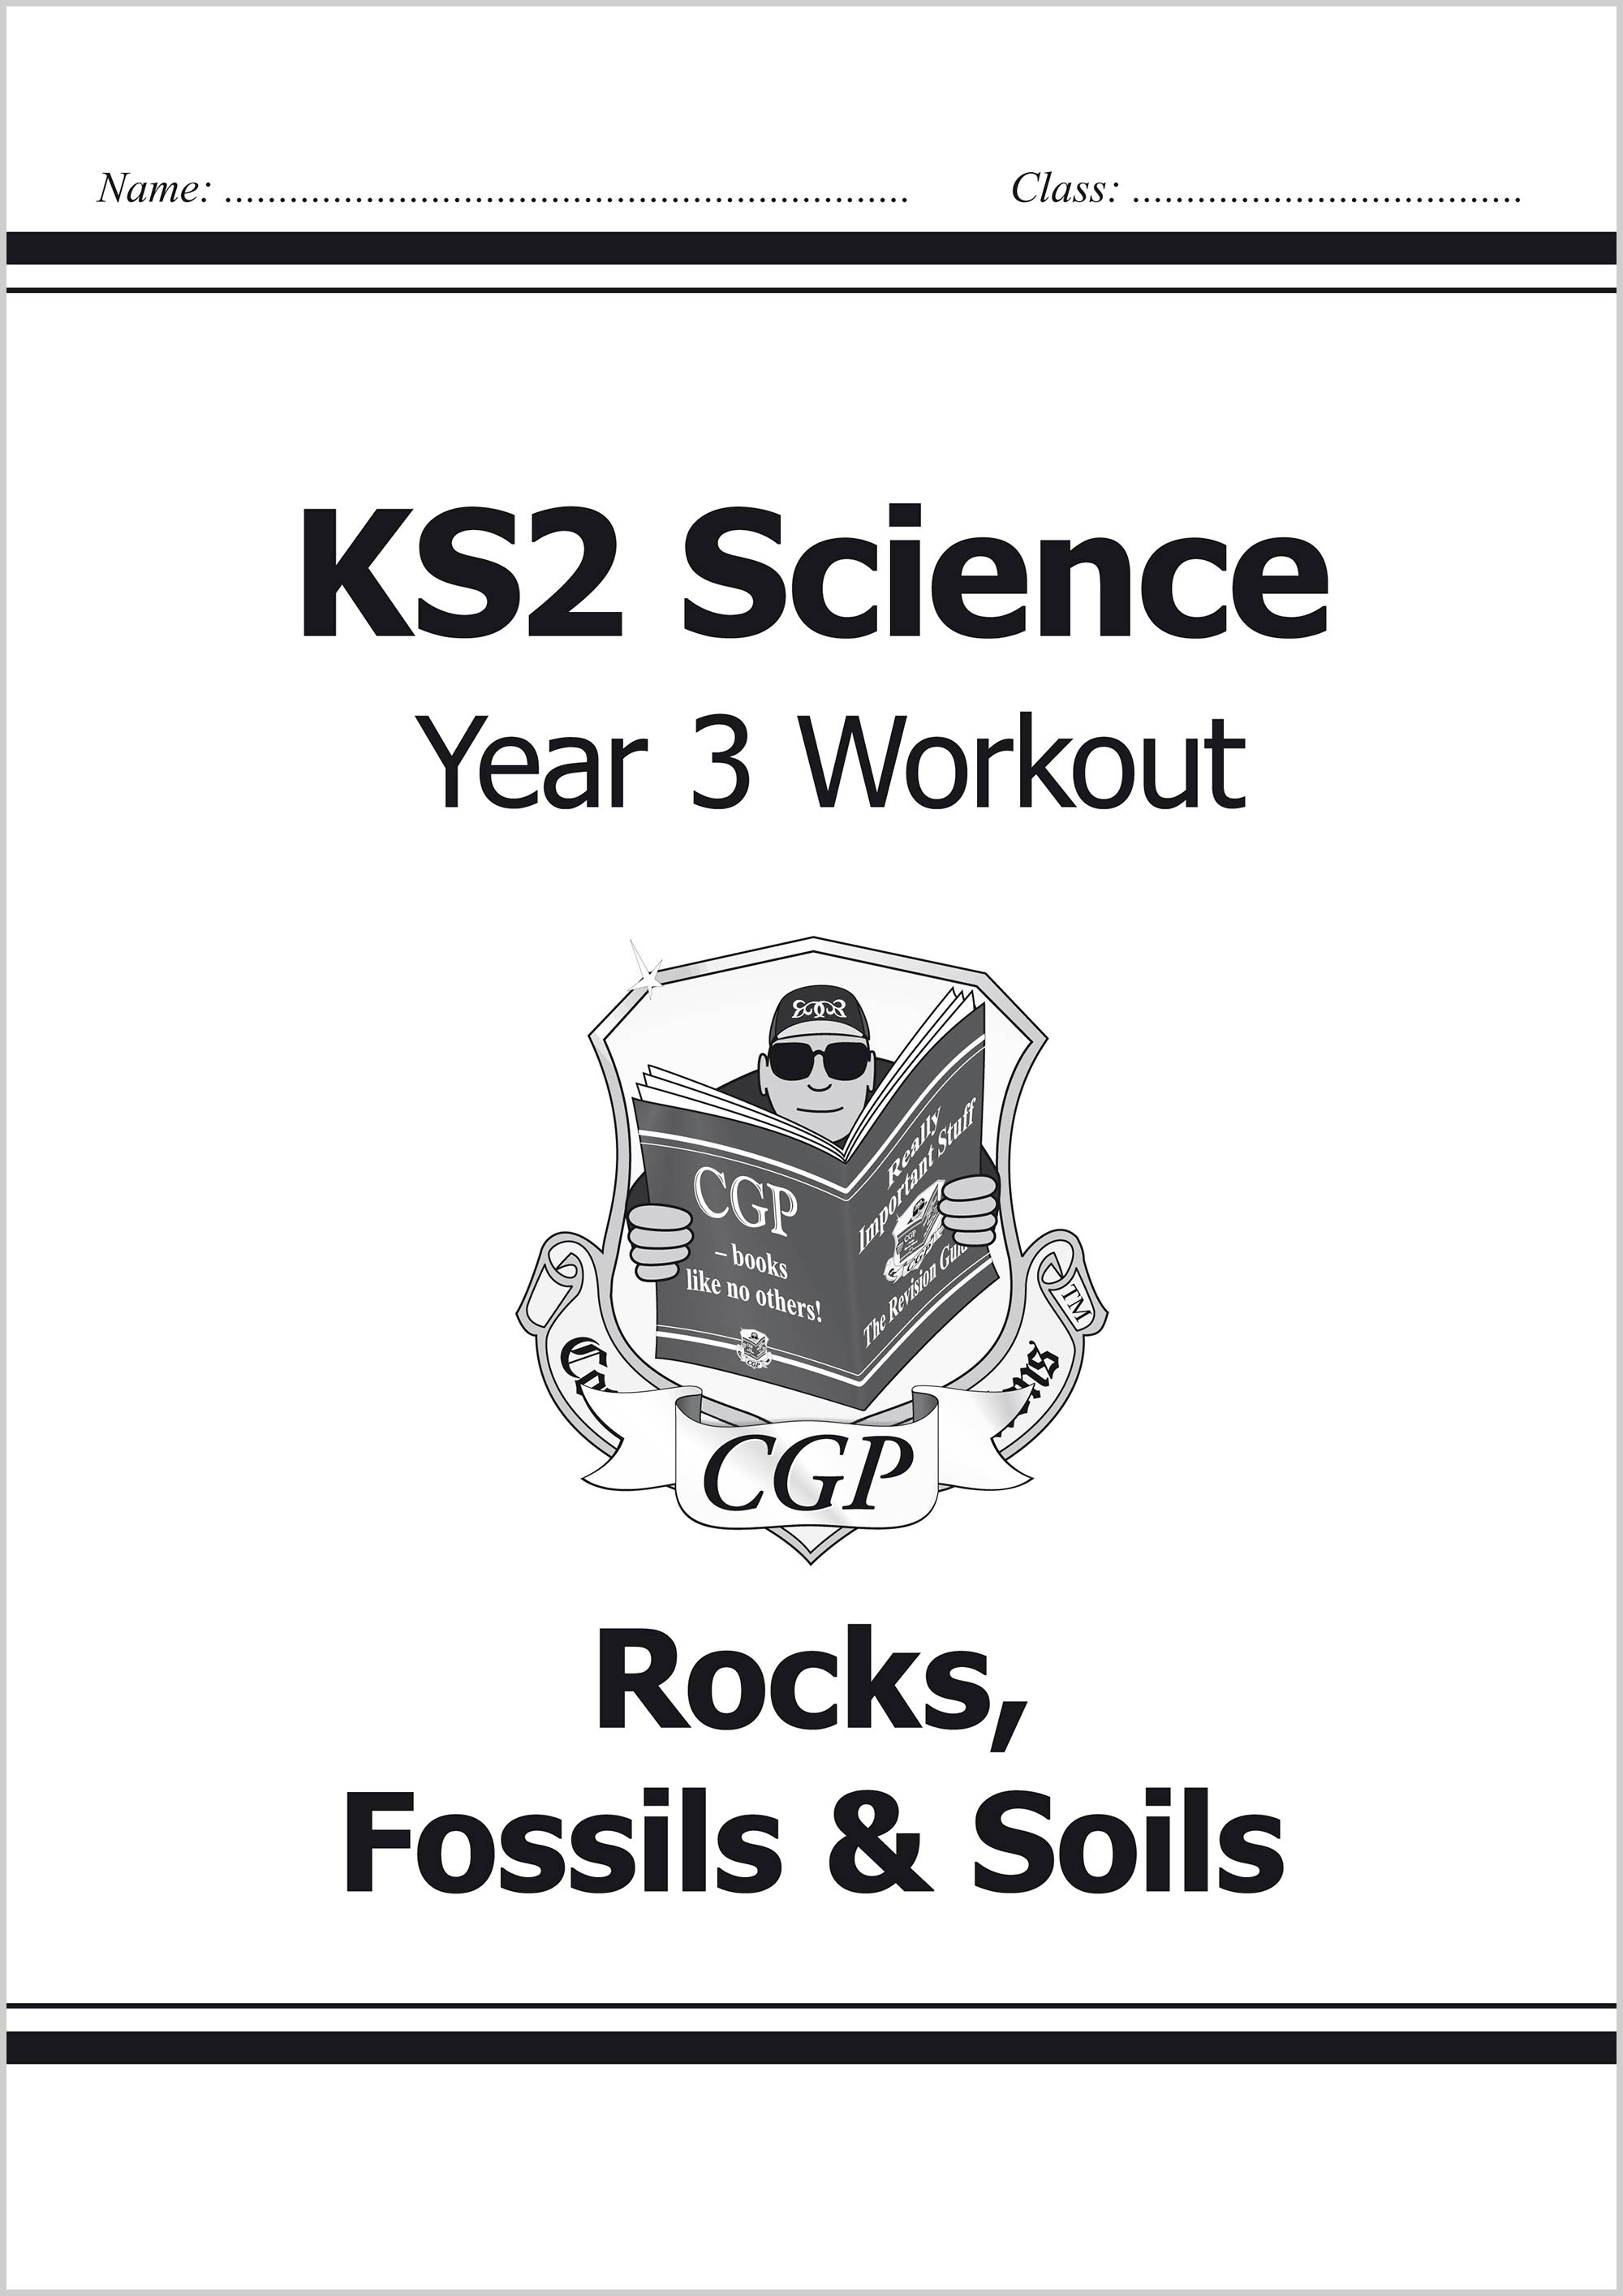 S3C22 - KS2 Science Year Three Workout: Rocks, Fossils & Soils